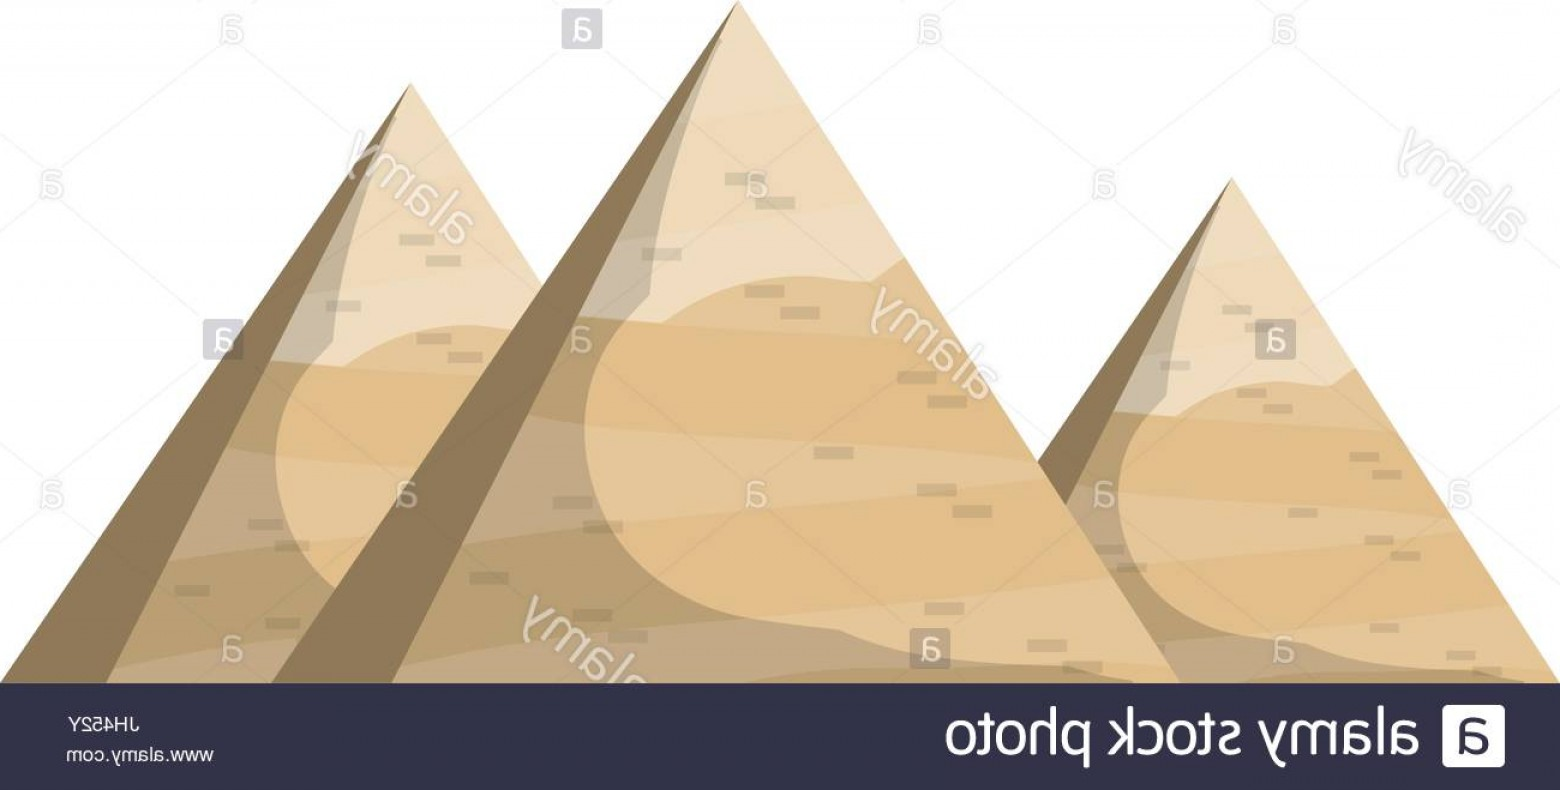 Piramids Vector Art: Stock Photo Egyptian Pyramids Symbol Icon Vector Illustration Graphic Design